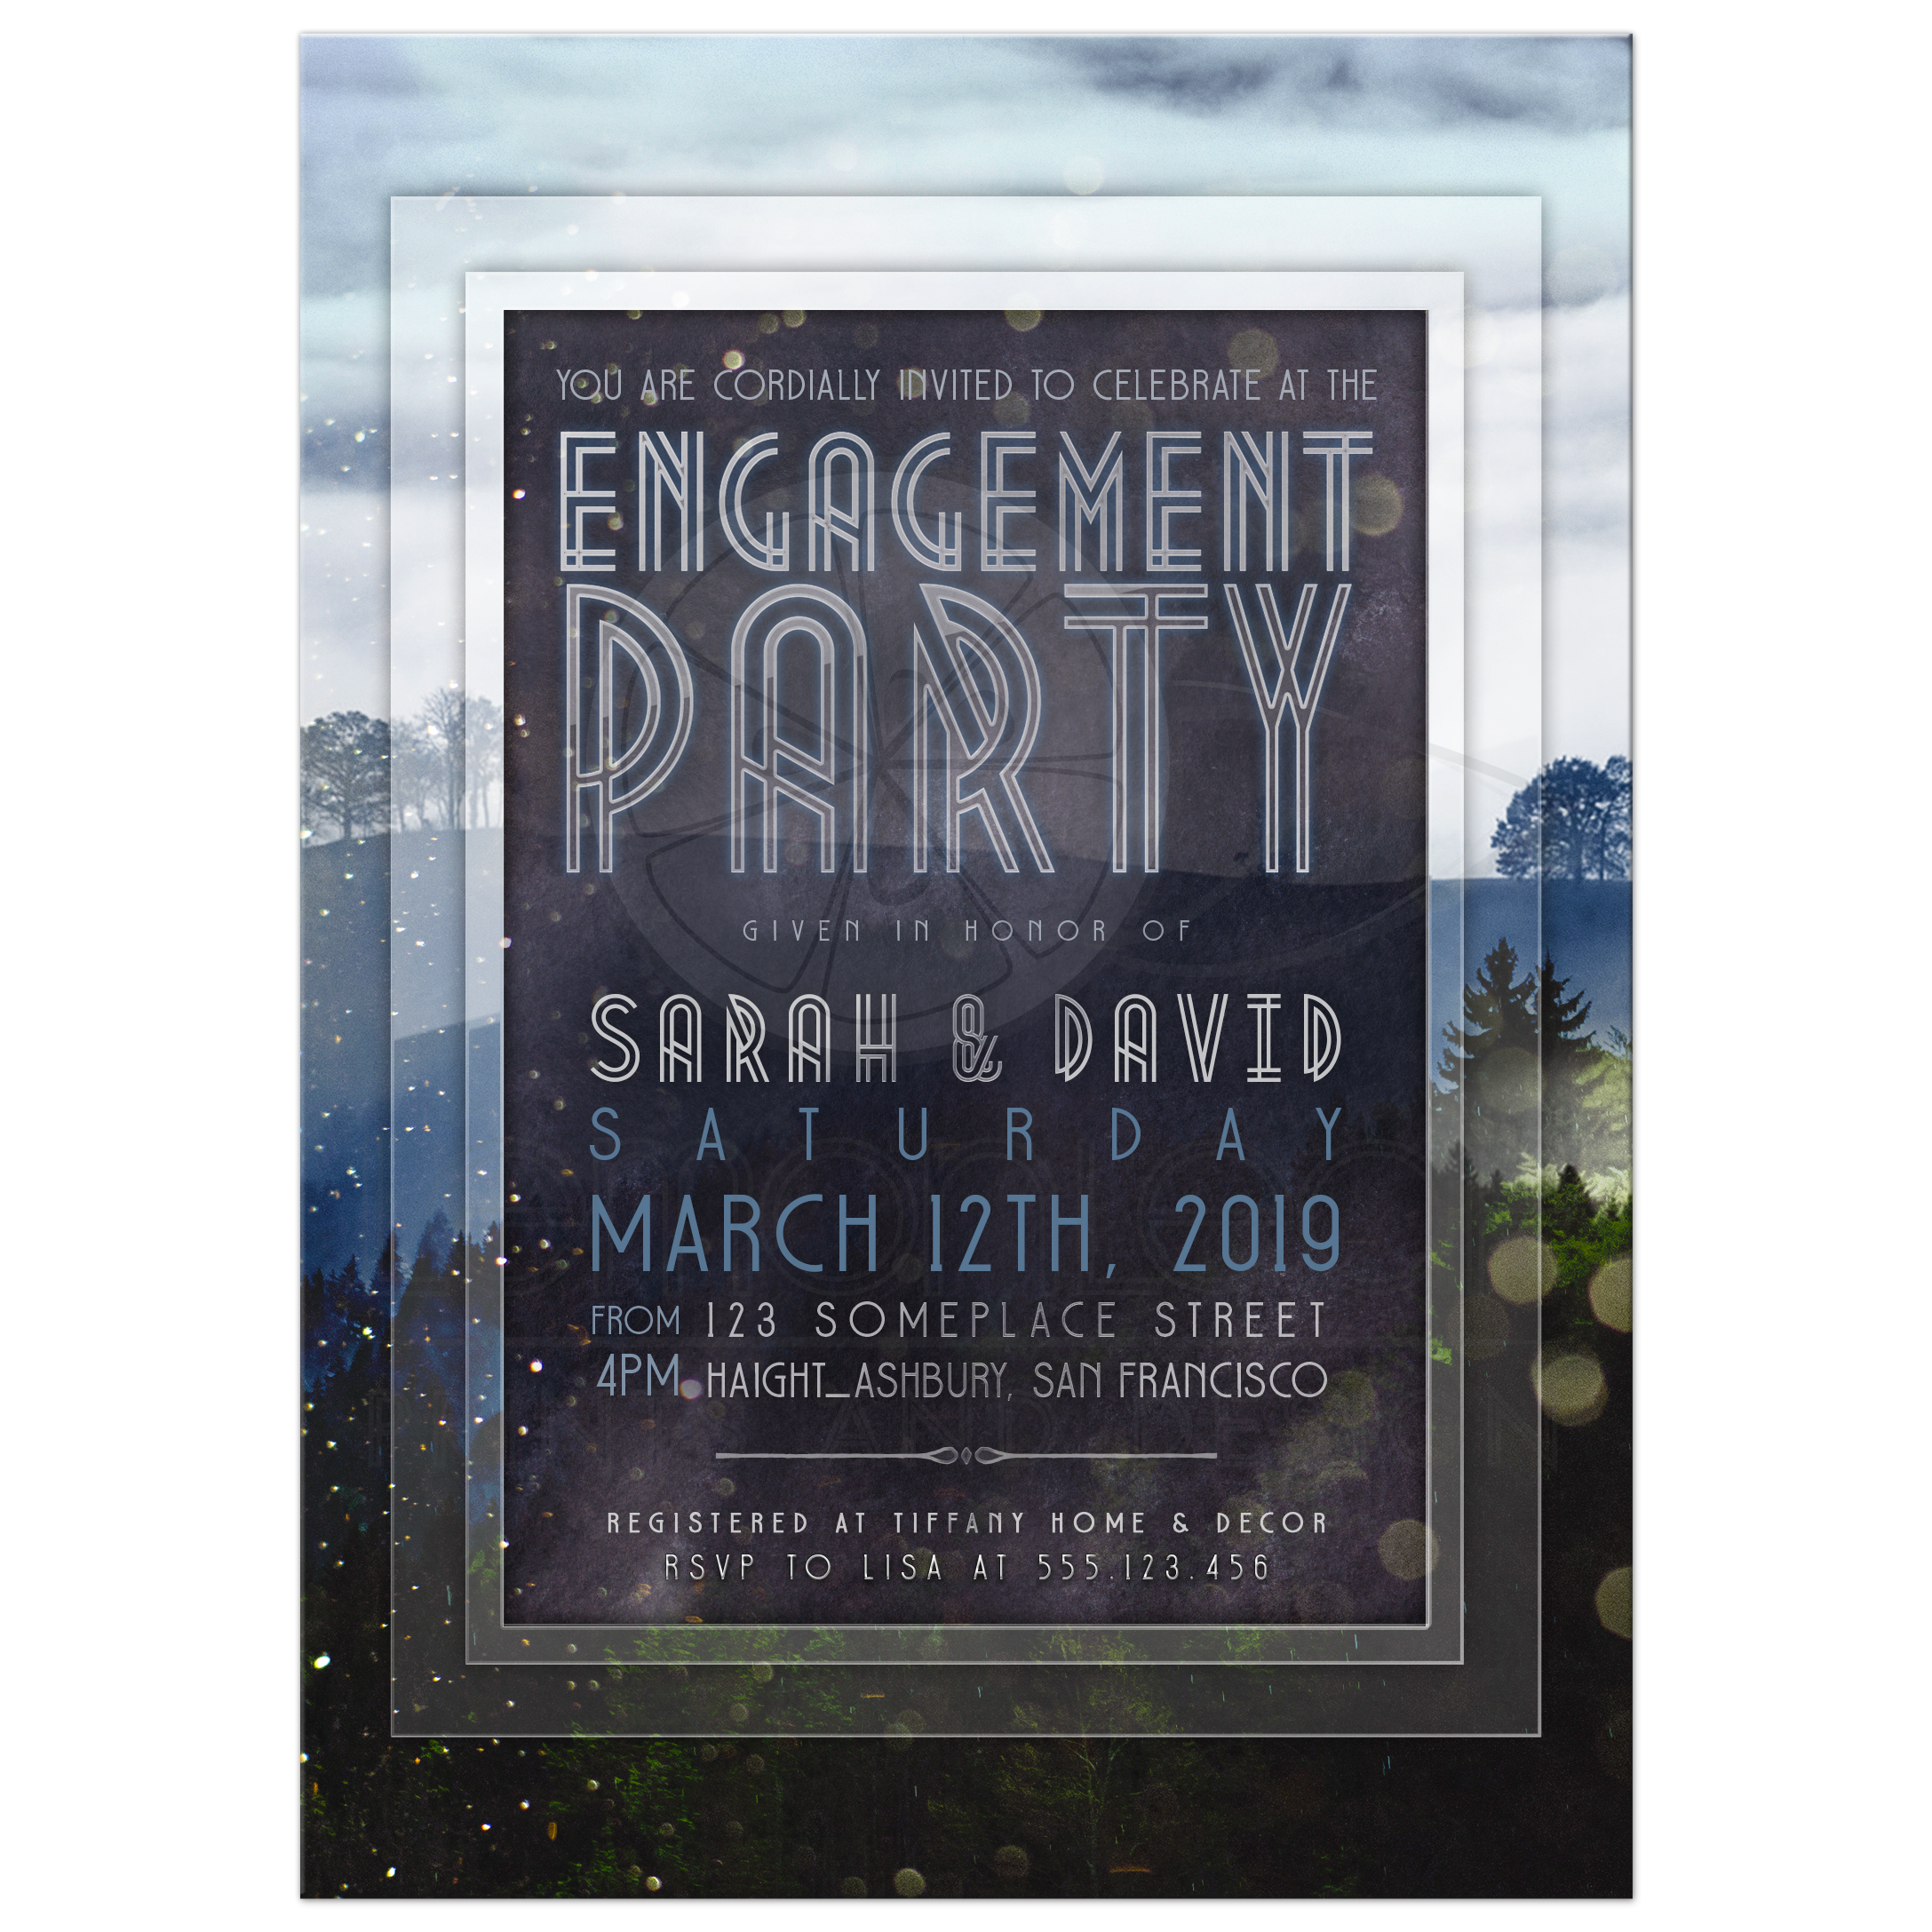 Engagement party invitation outdoors in nature nature outdoors theme engagement party invite stopboris Choice Image